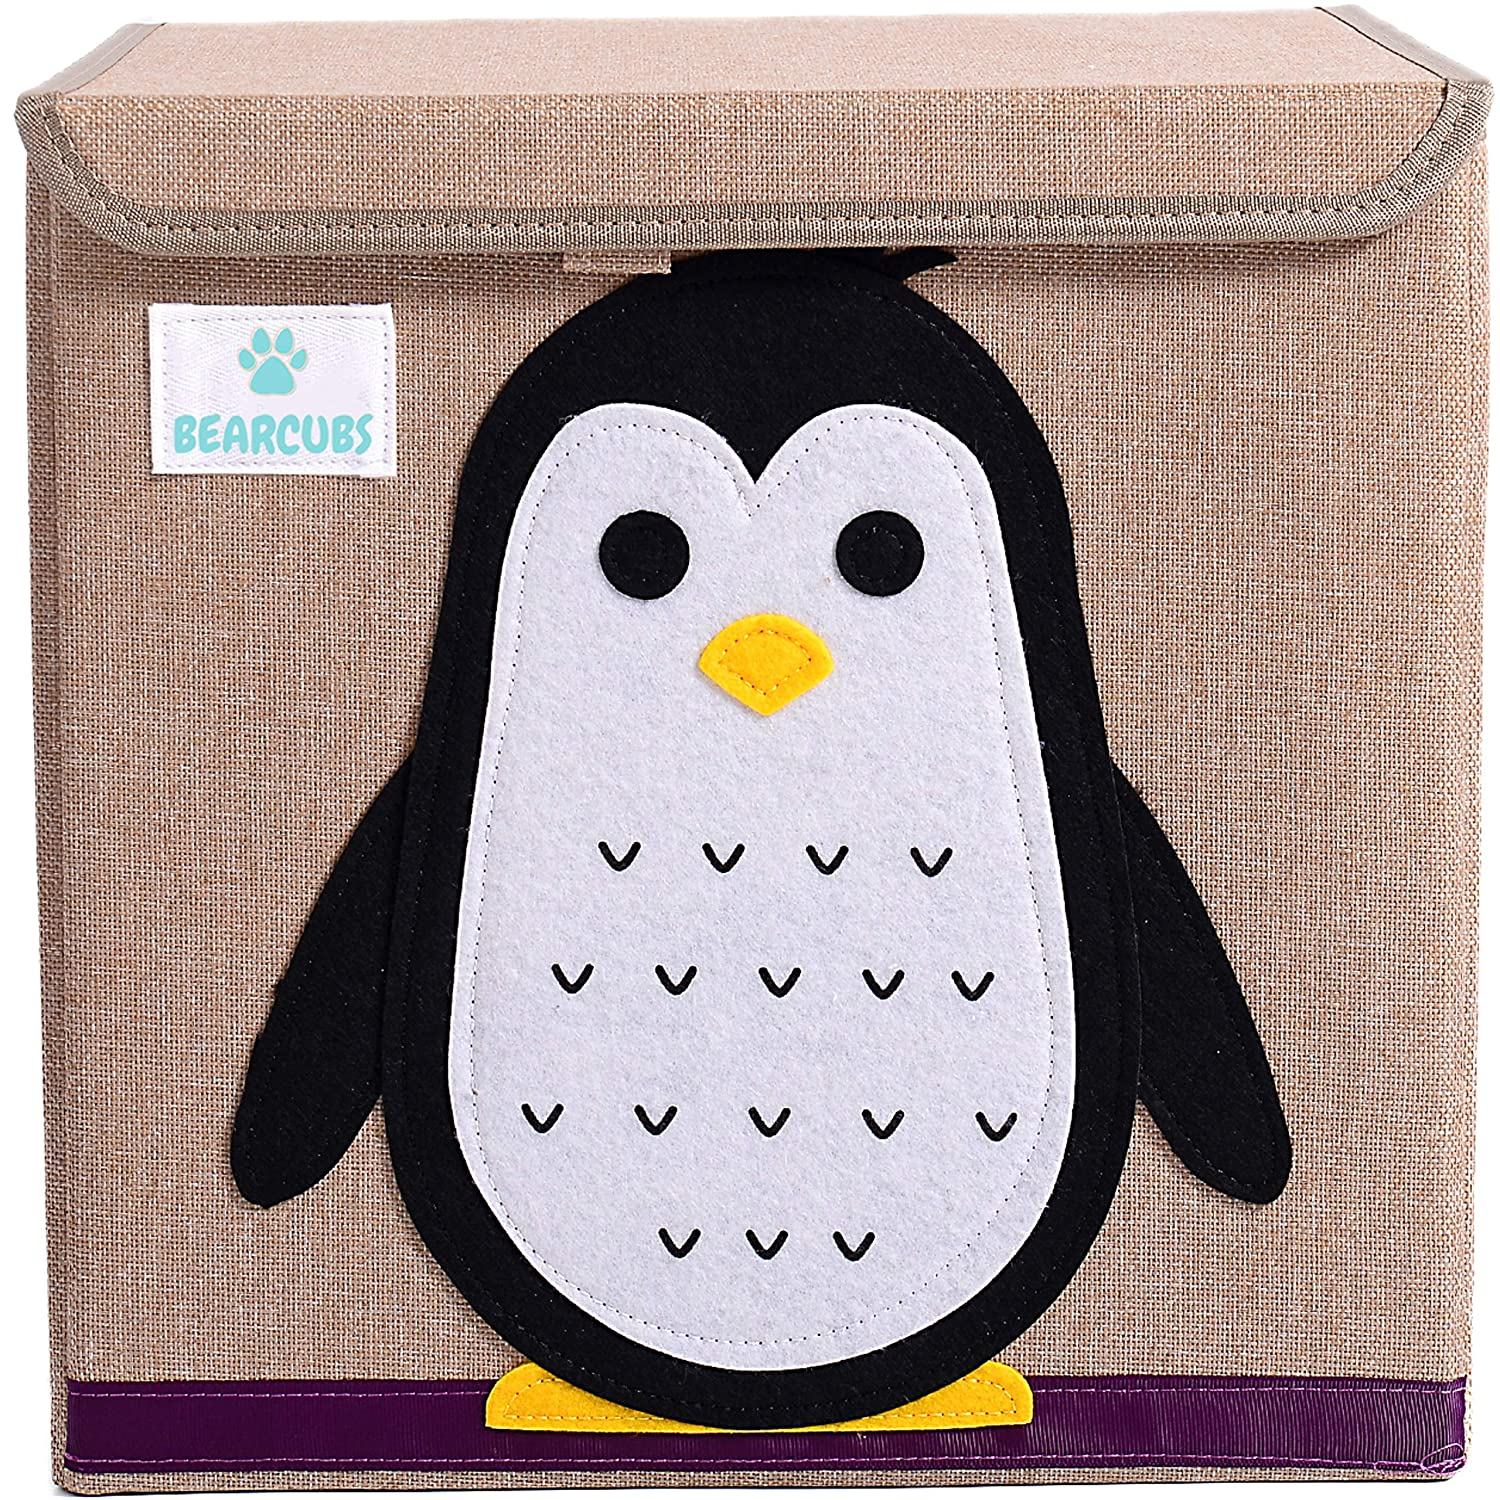 Bearcubs Small Toy Chest Foldable Stackable Storage and Organization Box for Kids - Nursery, Living Room, Playroom - Toy Bin with Lid - Designs for Boys and Girls (Penguin)